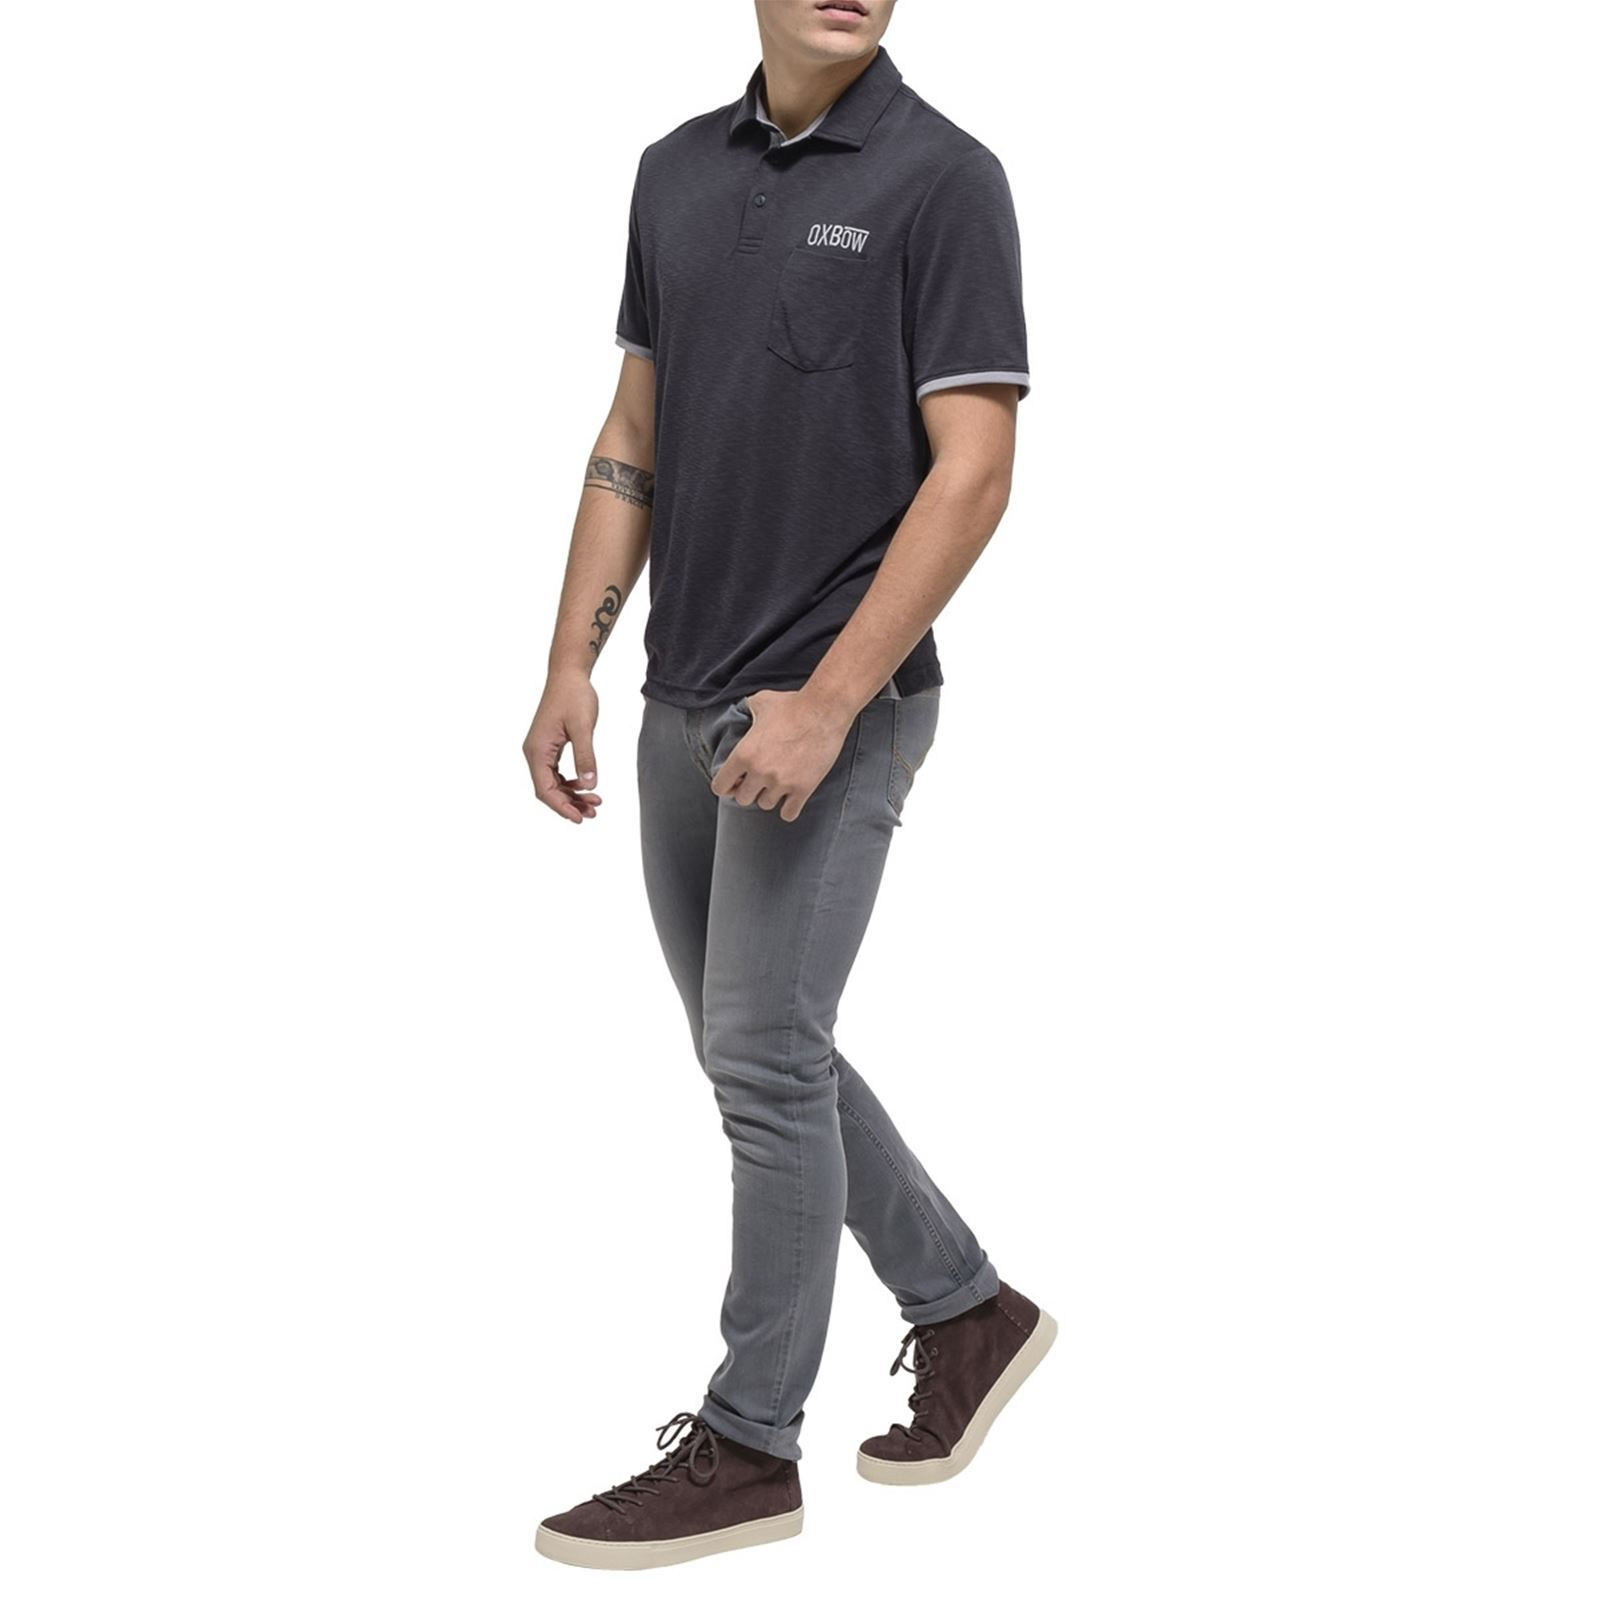 Noir Manches Courtes Homme Oxbow NaeviPolo V Y67gfby